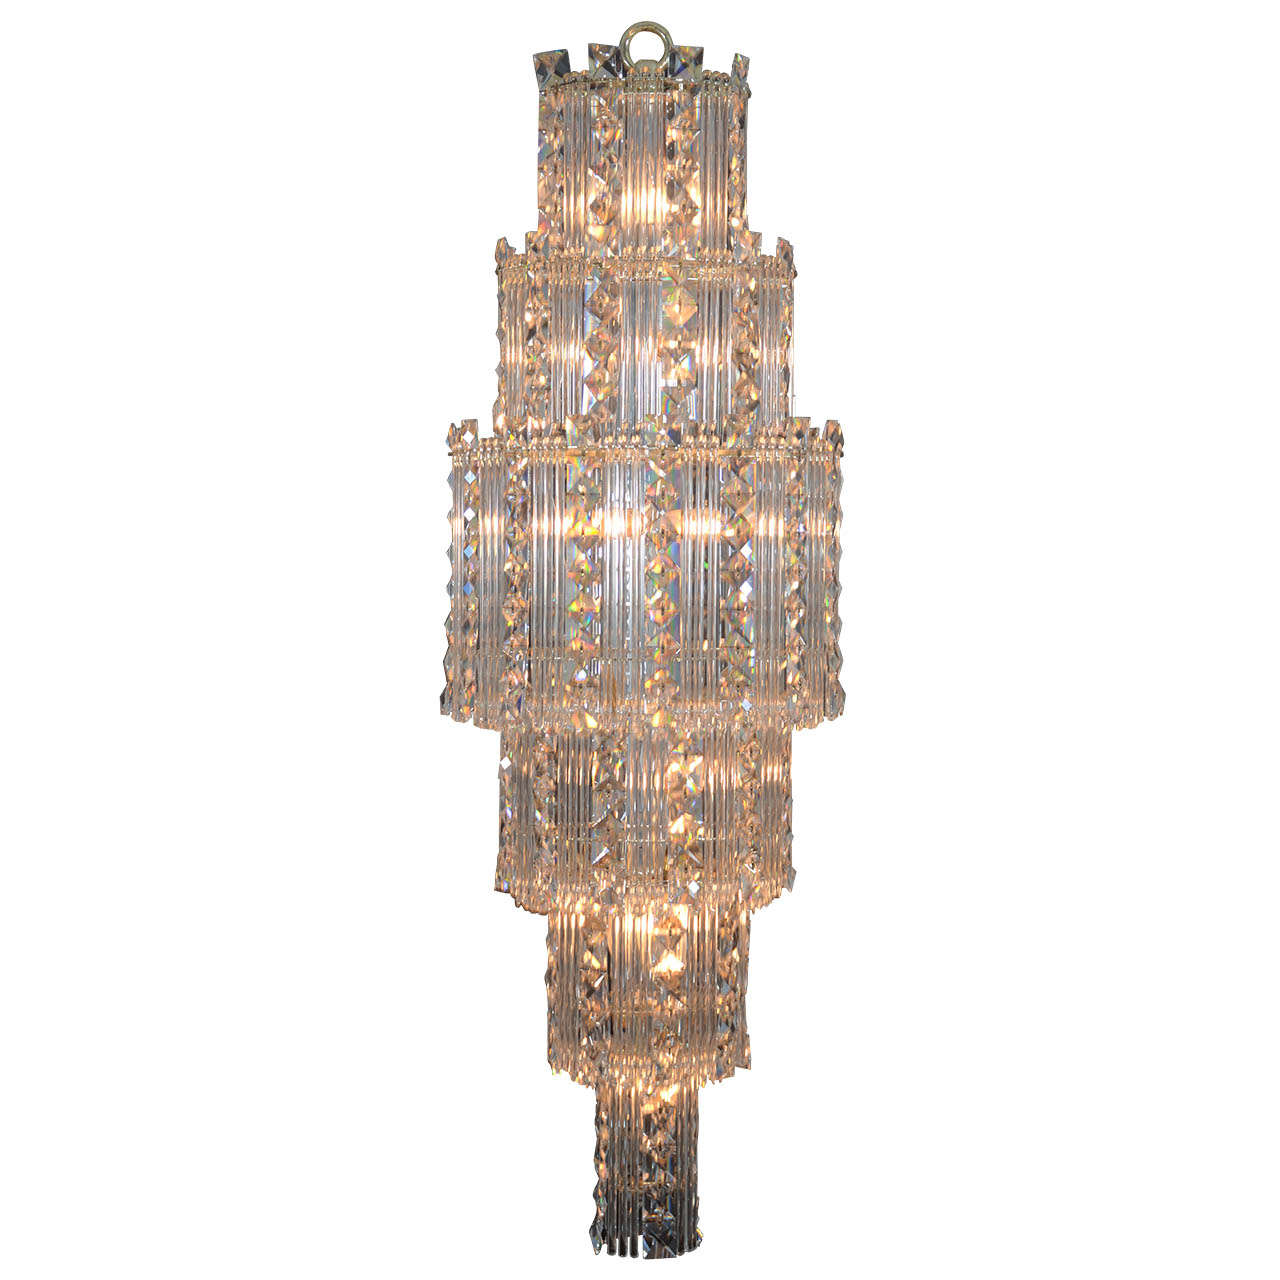 Mid century modern crystal chandelier for sale at 1stdibs - Chandeliers on sale online ...